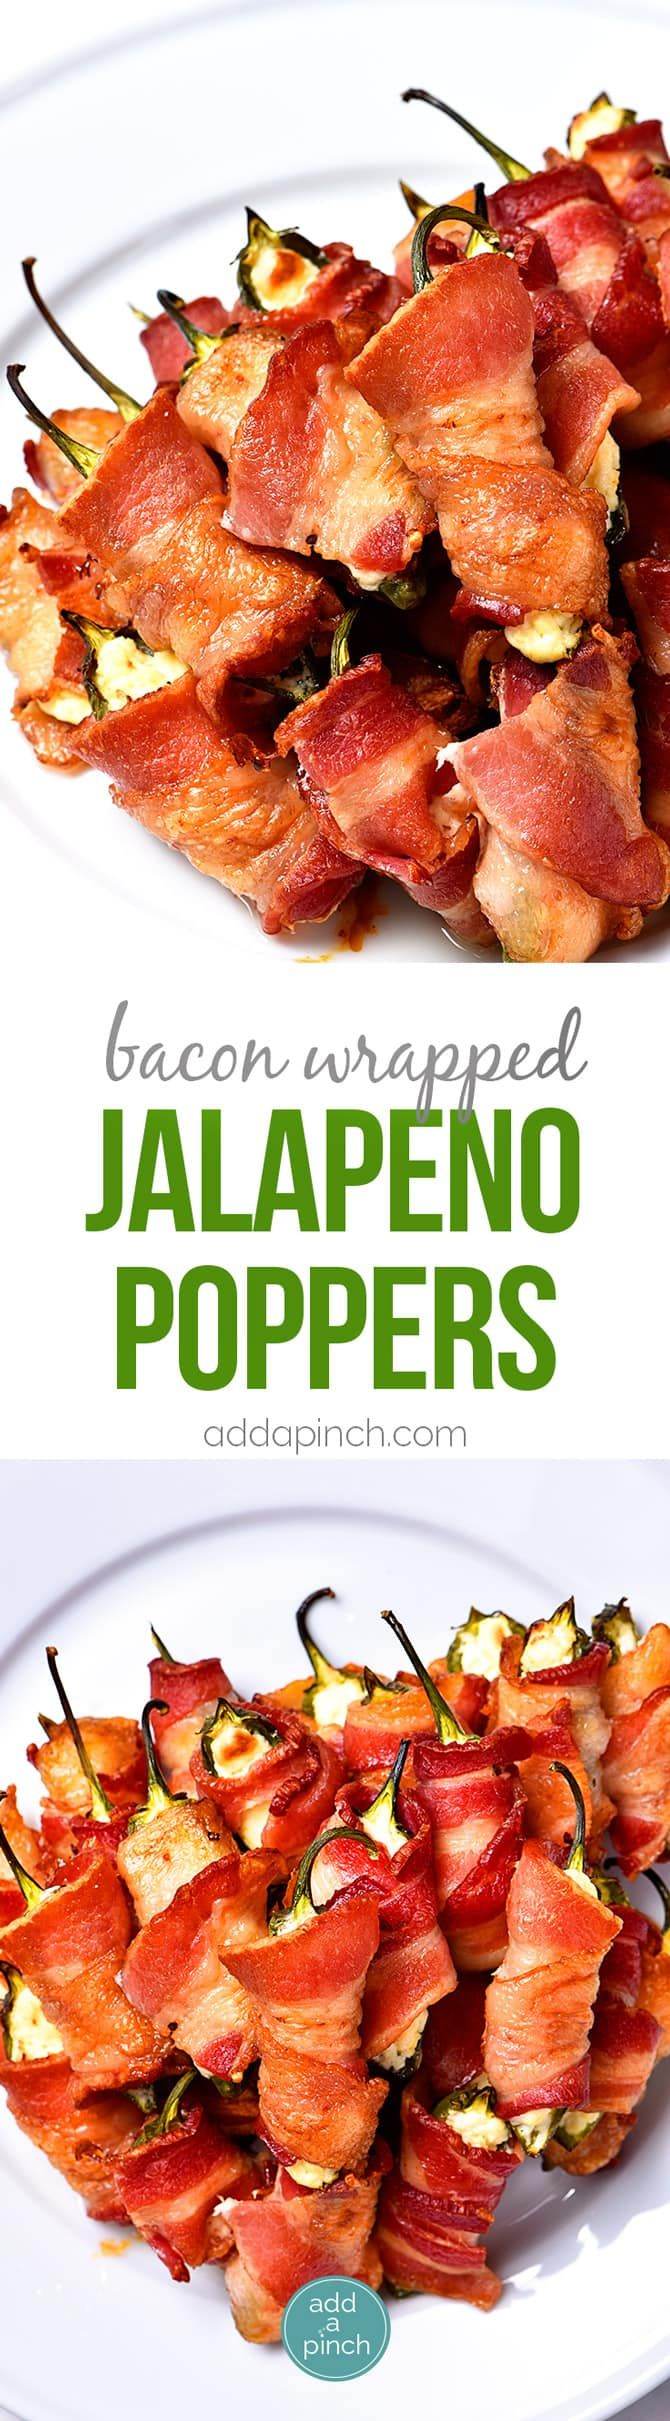 Bacon Wrapped Jalapeno Poppers Recipe - Bacon Wrapped Jalapeno Poppers make an appetizer that everyone loves! This easy recipe combines creamy cheeses, spicy jalapenos and crispy bacon for classic baked jalapeno poppers that are irresistible! // addapinch.com